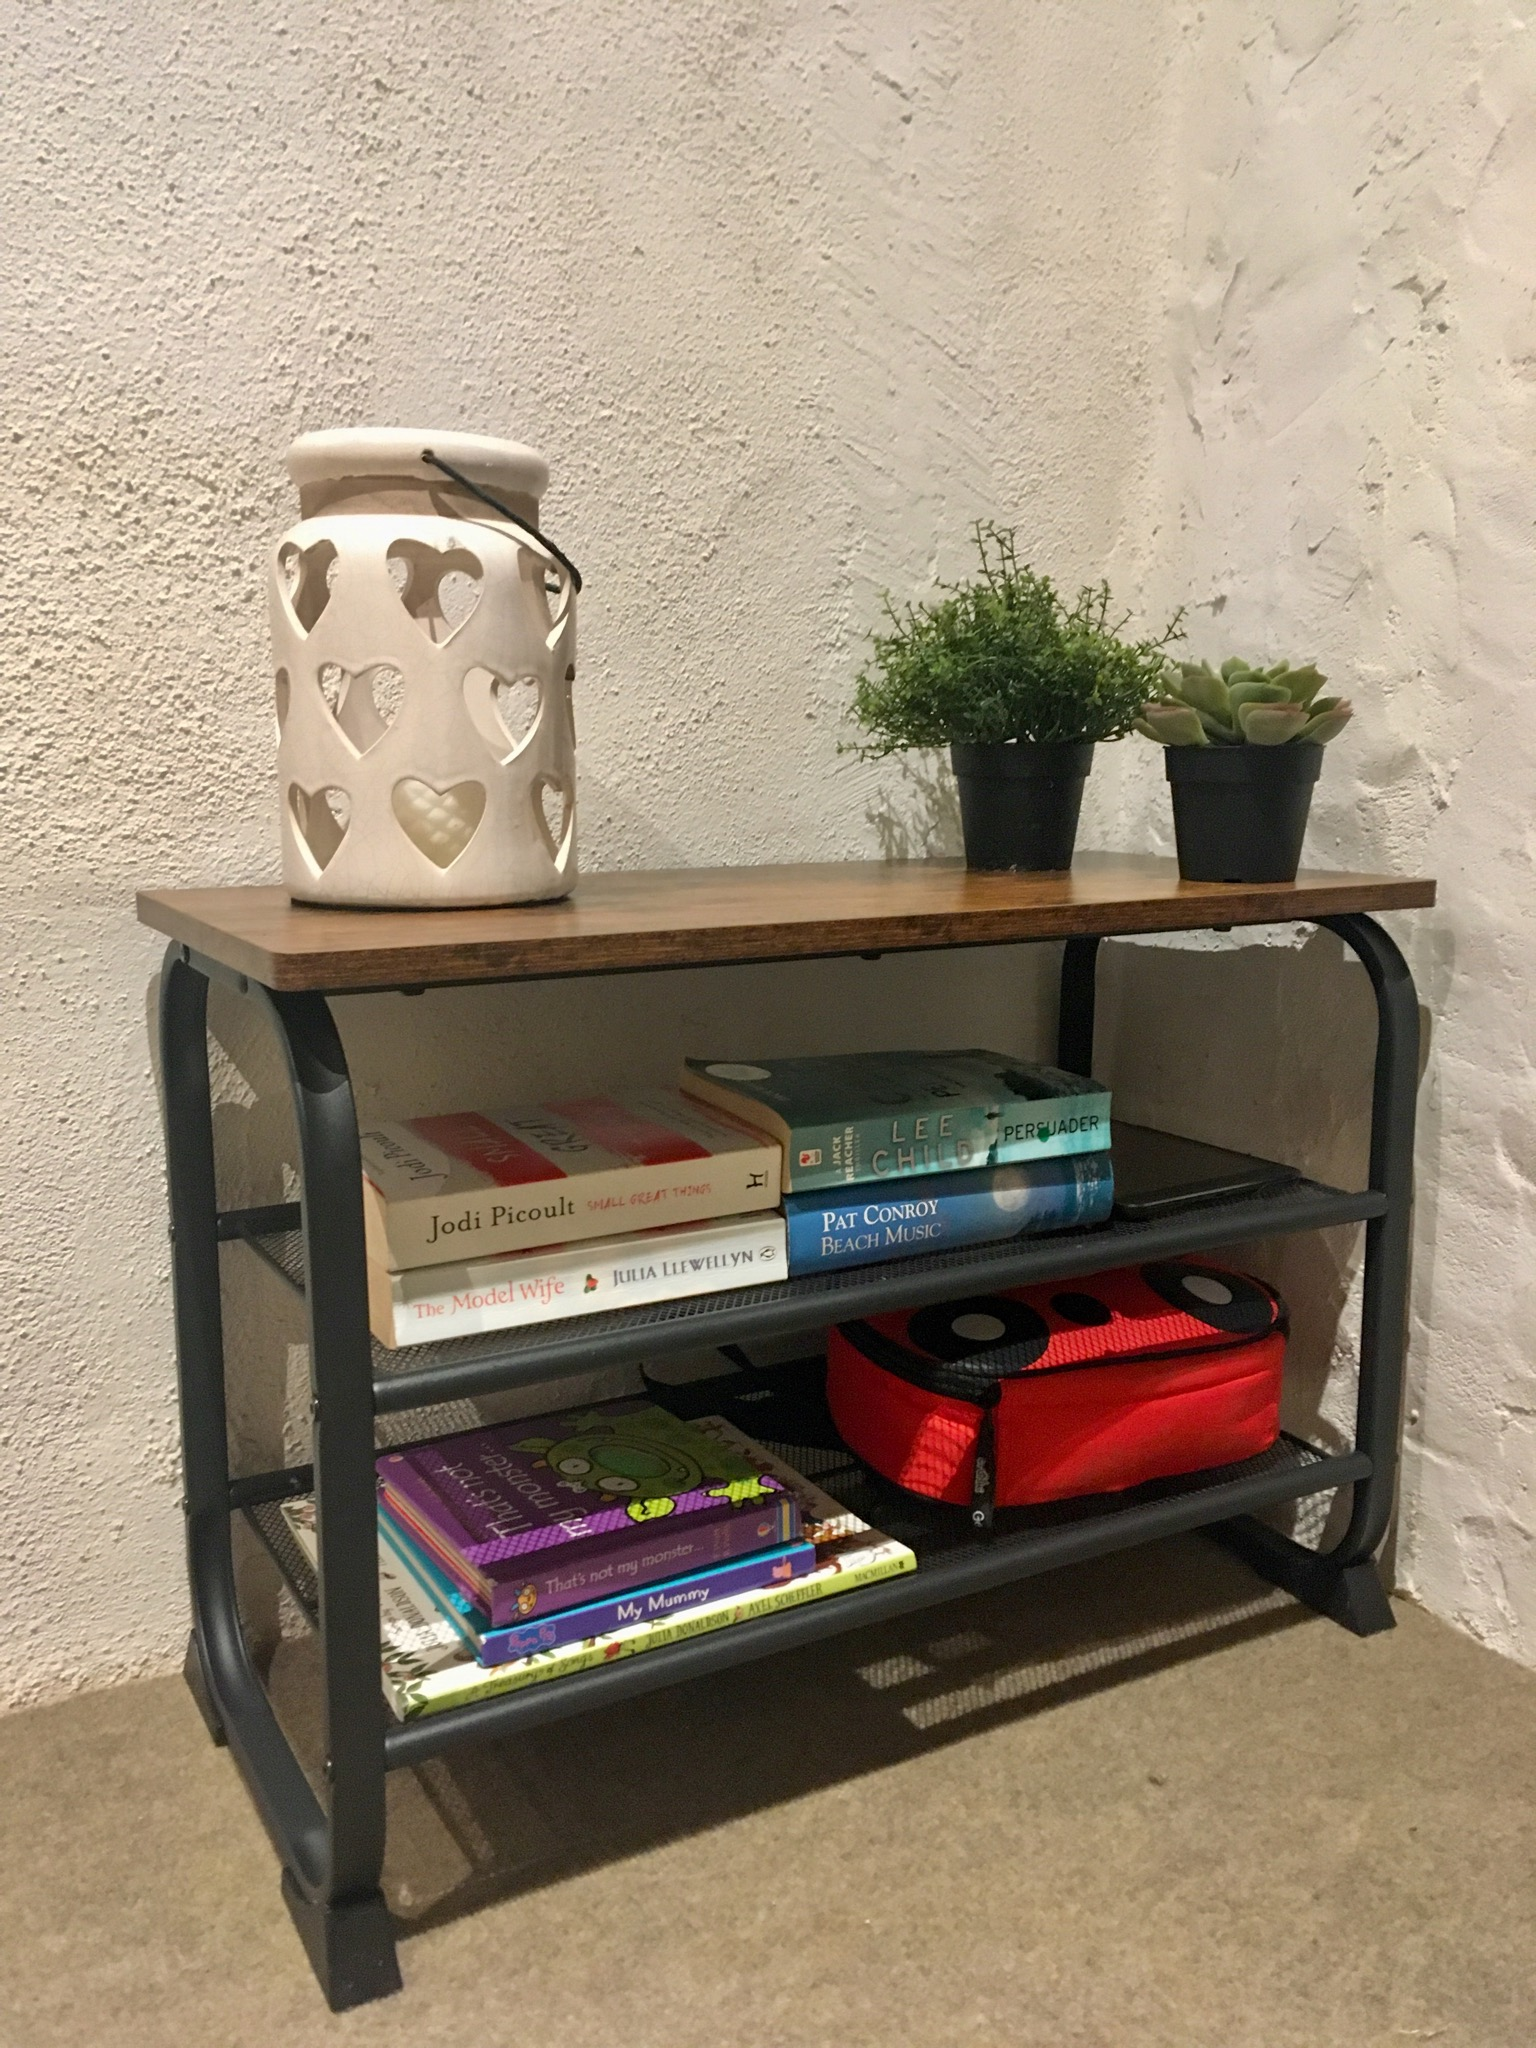 The vasagle shoe bench with a cut out heart candle holder and plants on the top, books on both mesh shelves